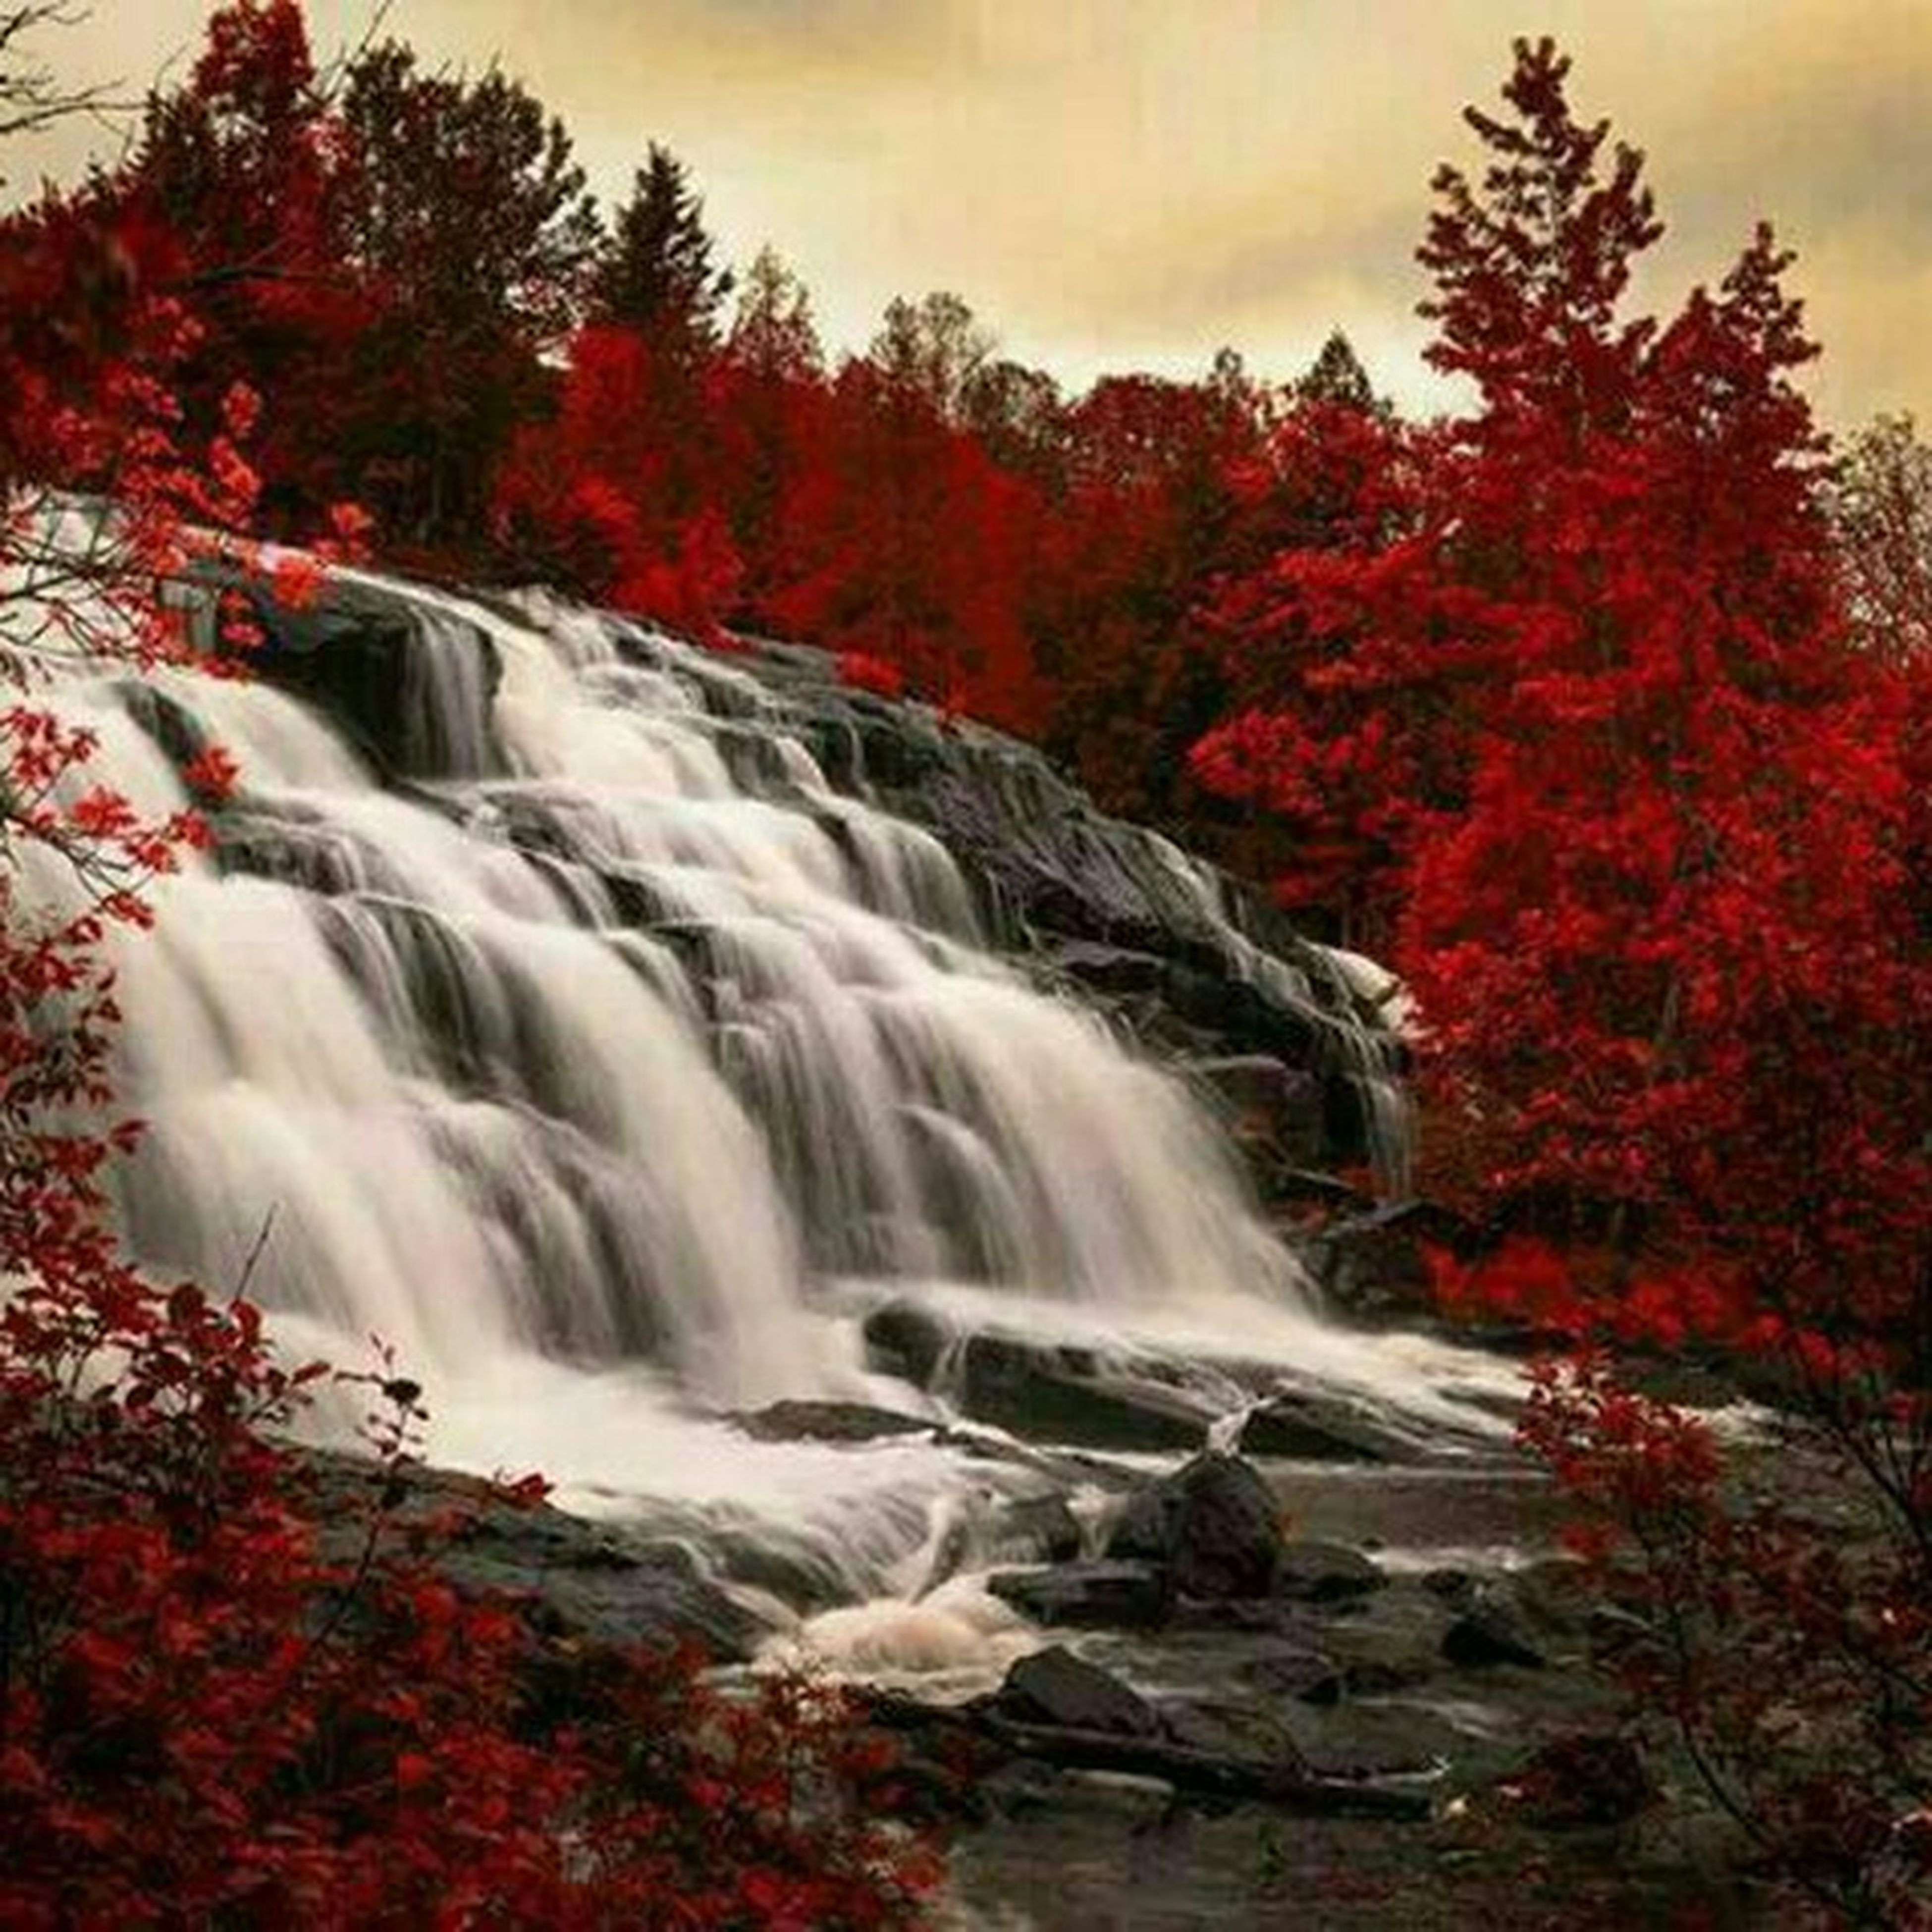 tree, waterfall, flowing water, water, long exposure, motion, beauty in nature, scenics, flowing, forest, nature, autumn, change, red, tranquil scene, growth, tranquility, blurred motion, rock - object, idyllic